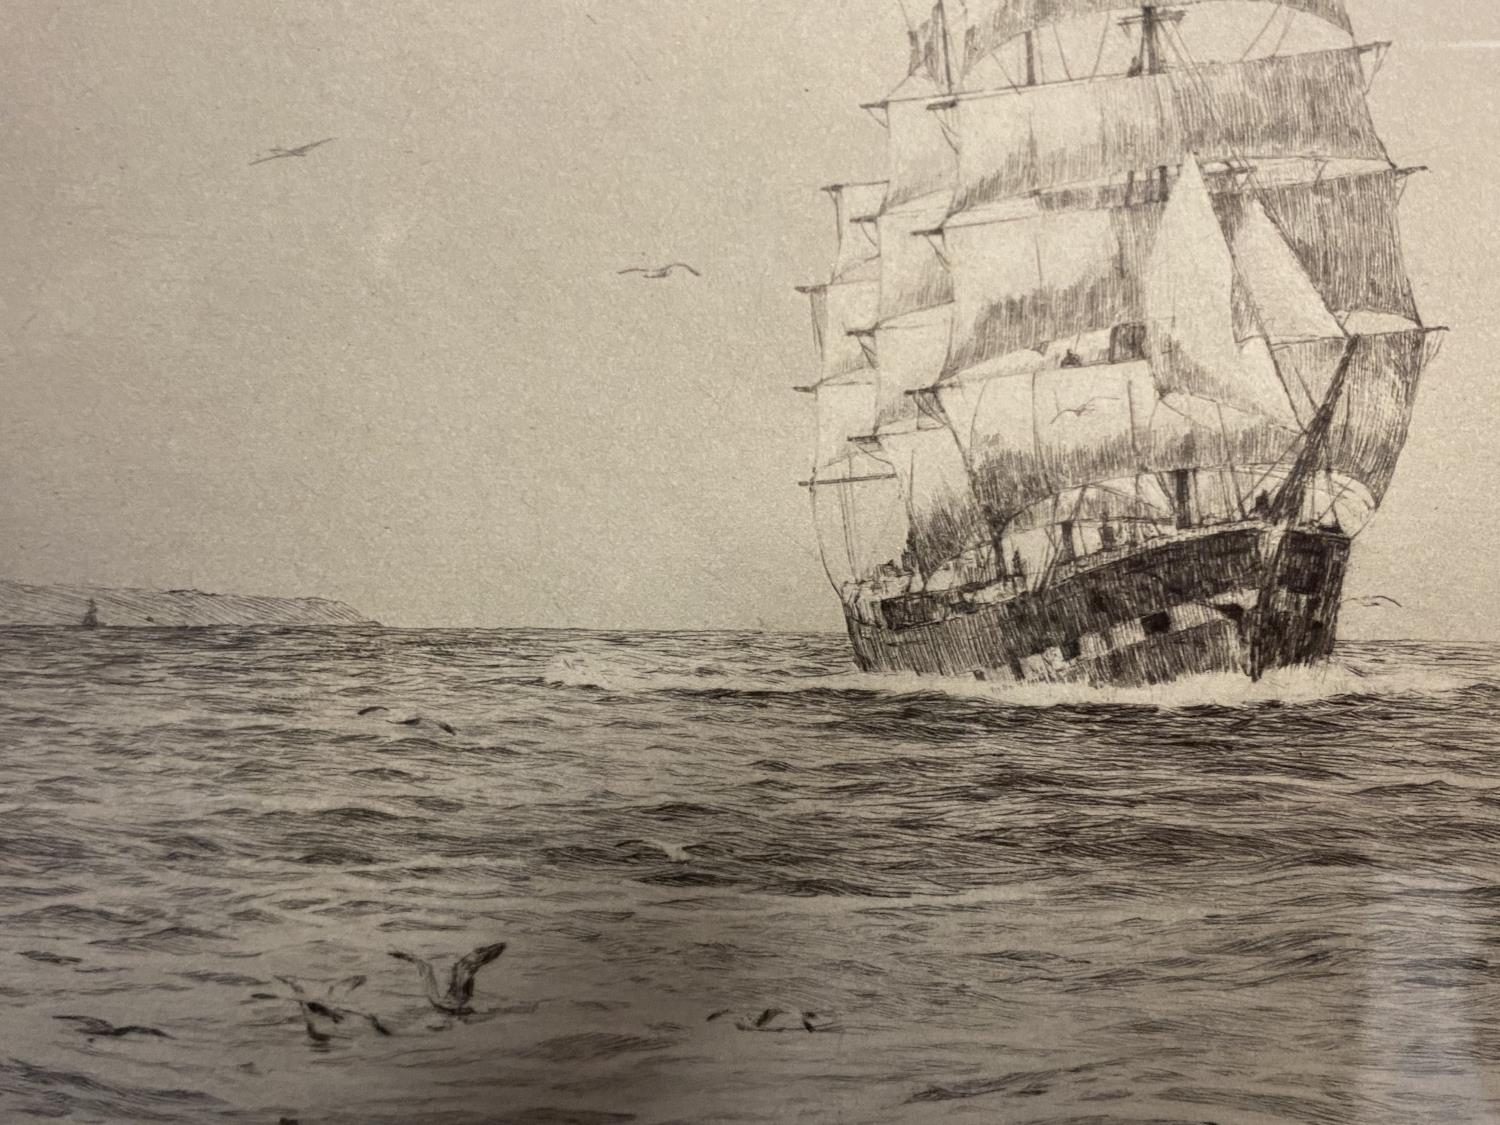 Black and White etching on Paper, Sailing ship fully rigged at sea, 17 x 30cm , signed and titled in - Image 13 of 15